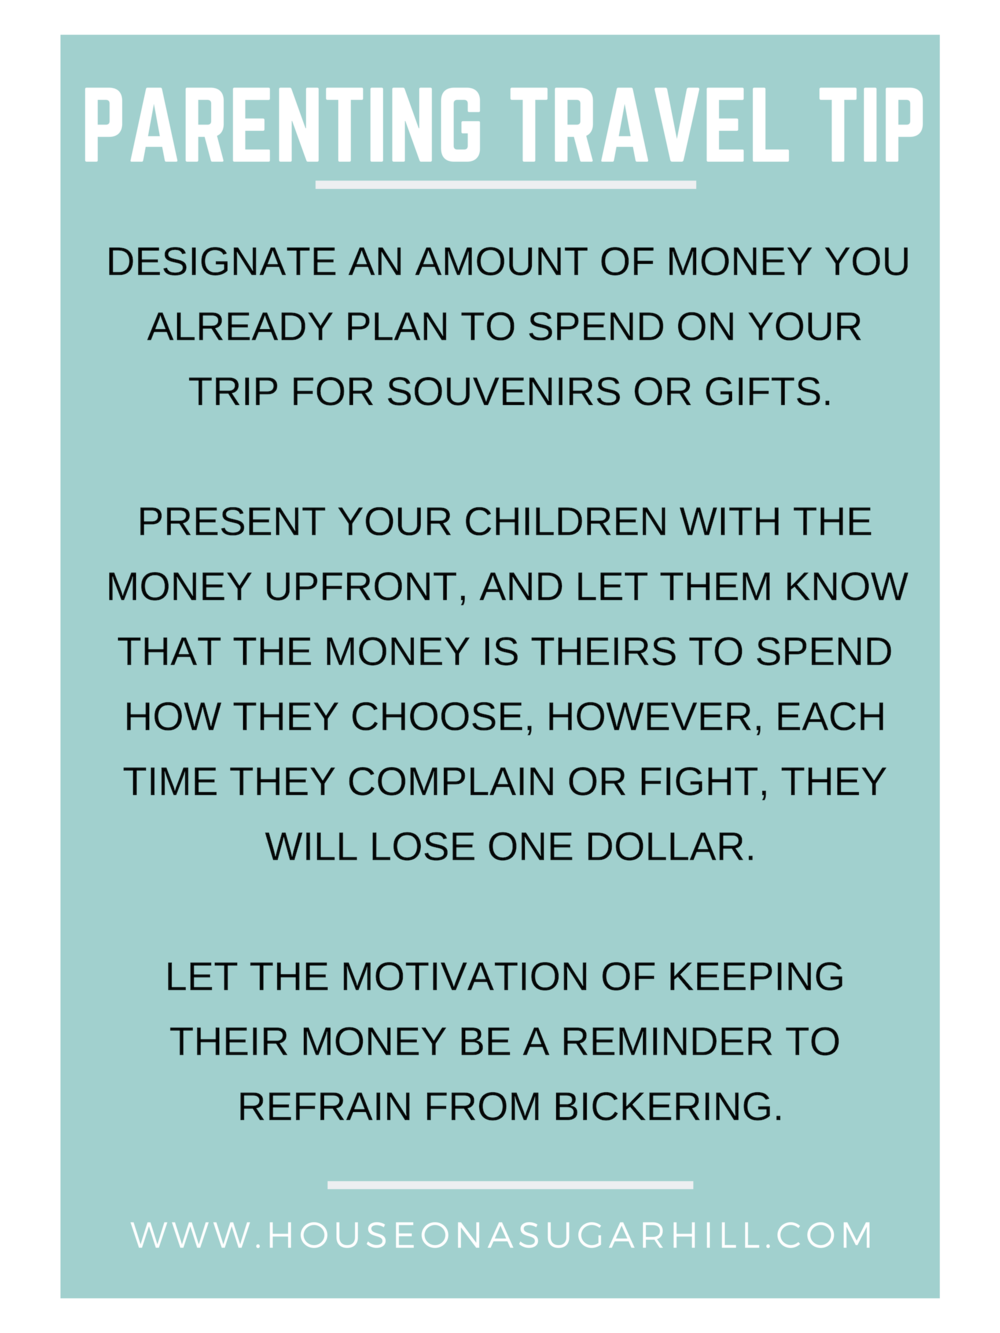 parenting travel tip (2).png